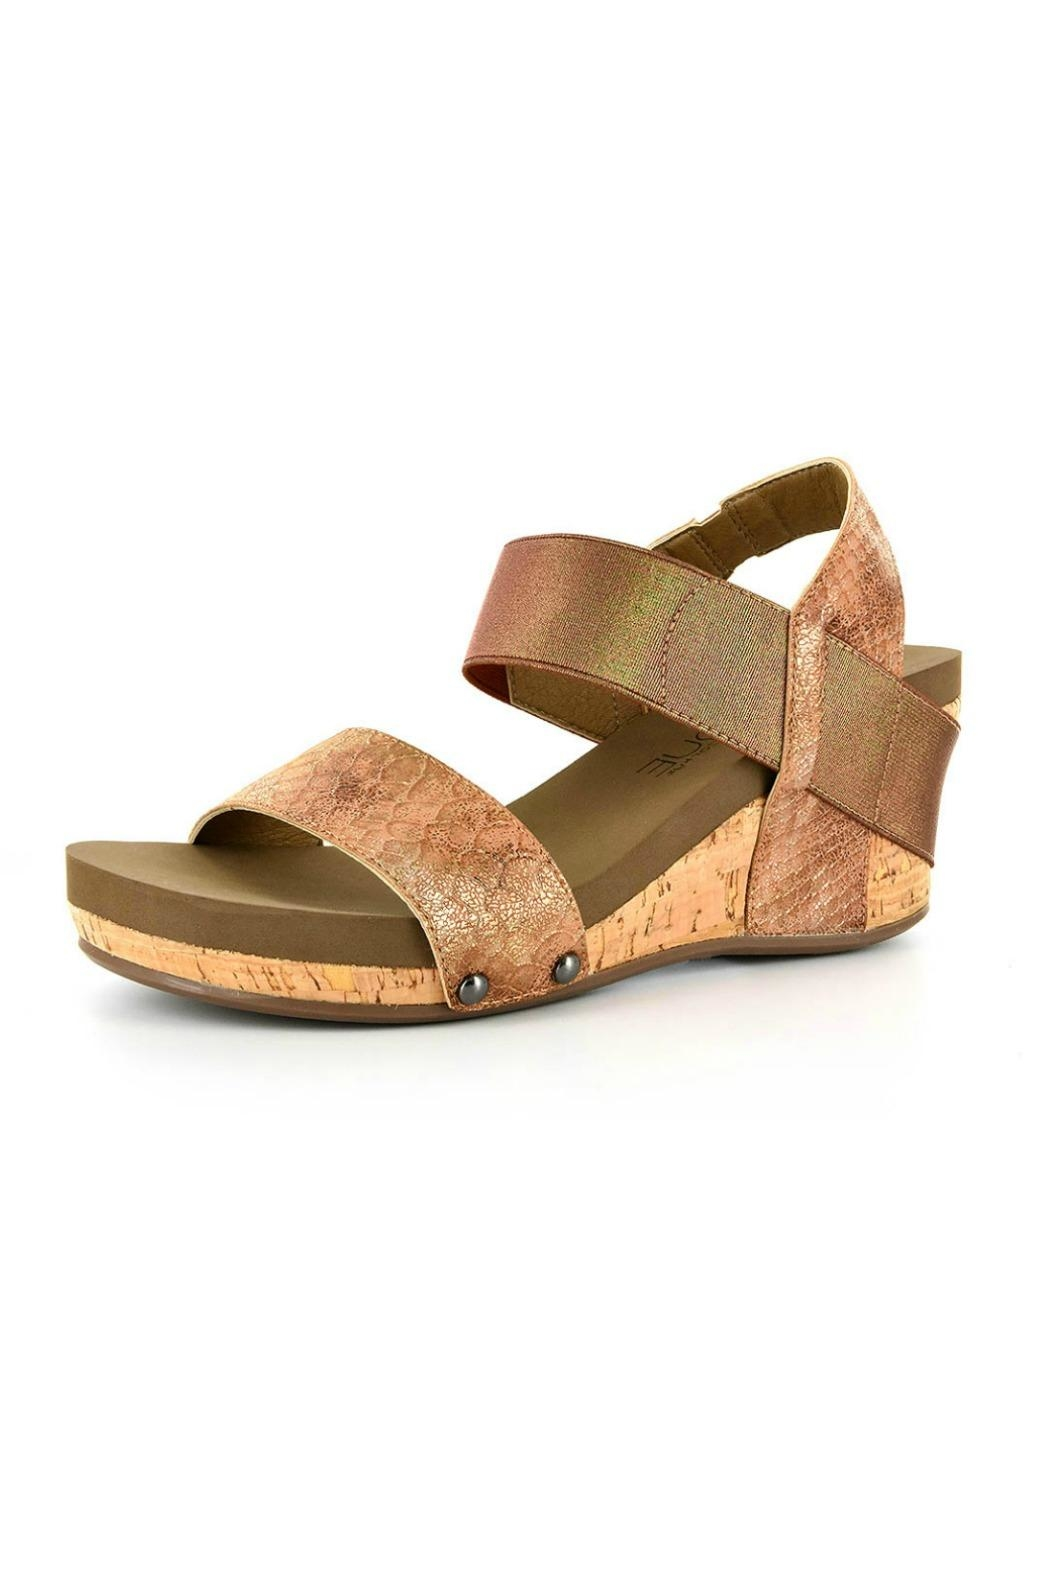 b9d7bb02aad3 Corkys Bandit Wedge Sandal from California by Apricot Lane - Folsom ...